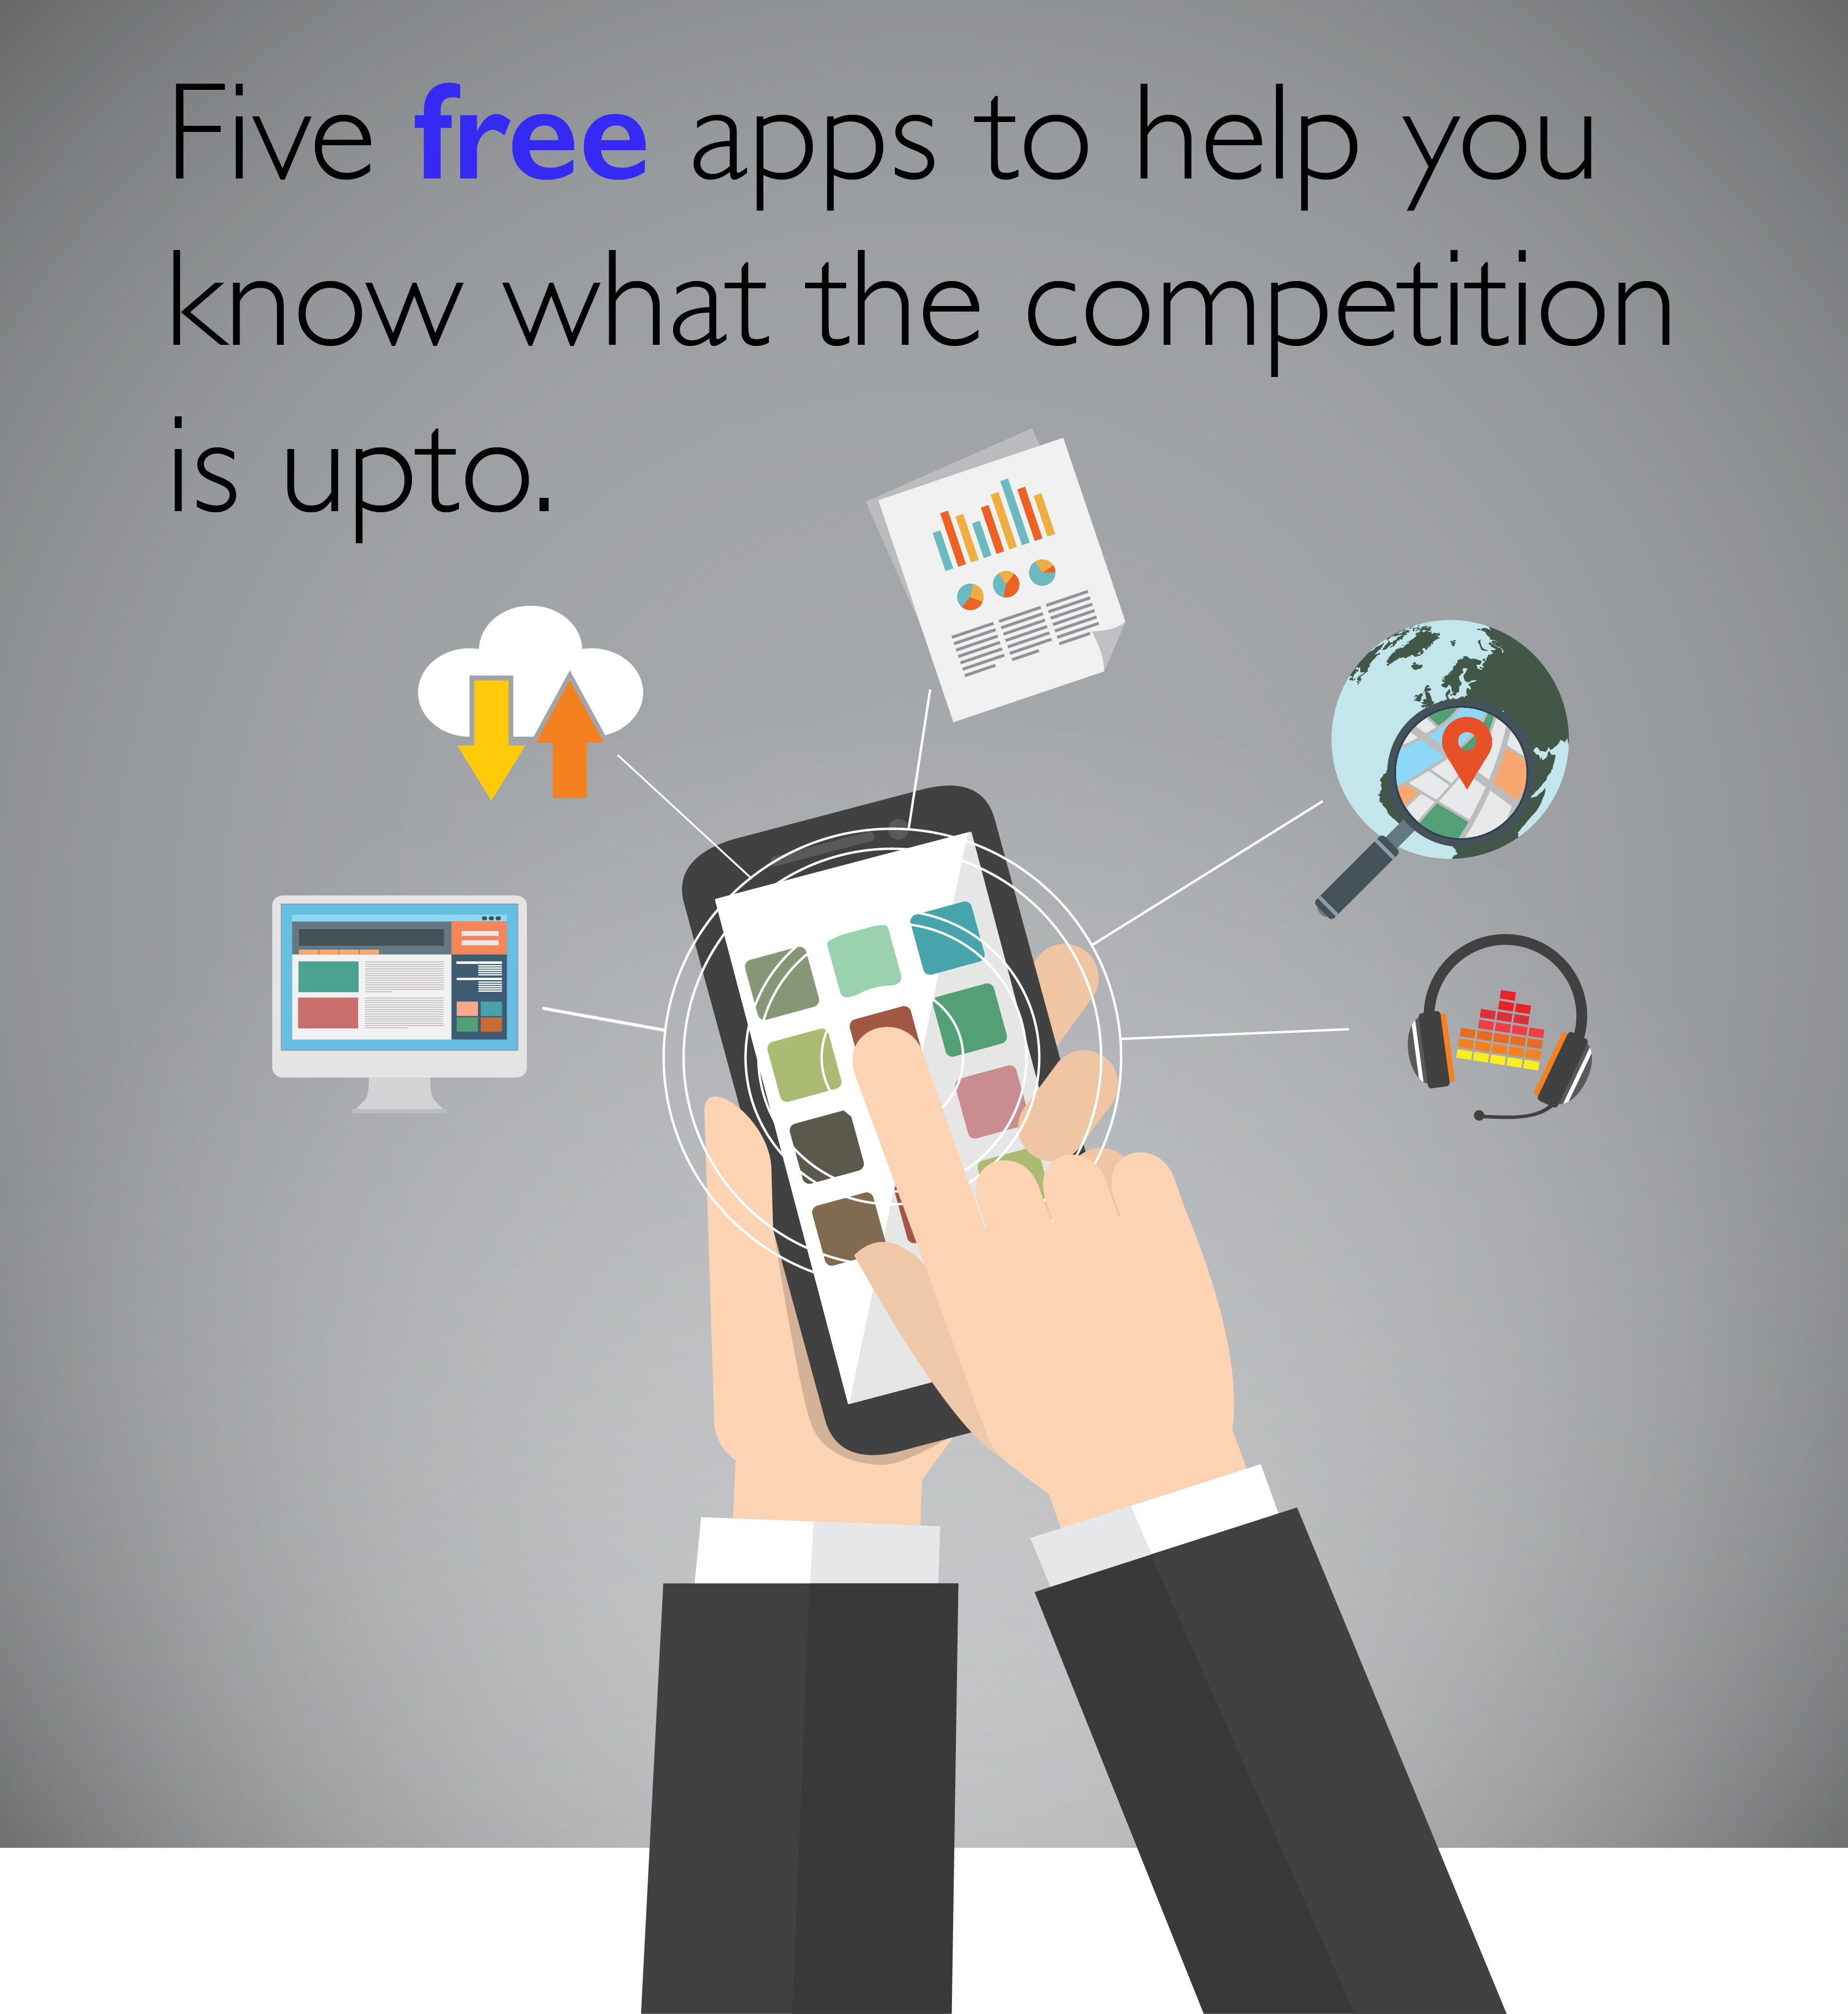 Five free apps to help you know what the competition is upto.